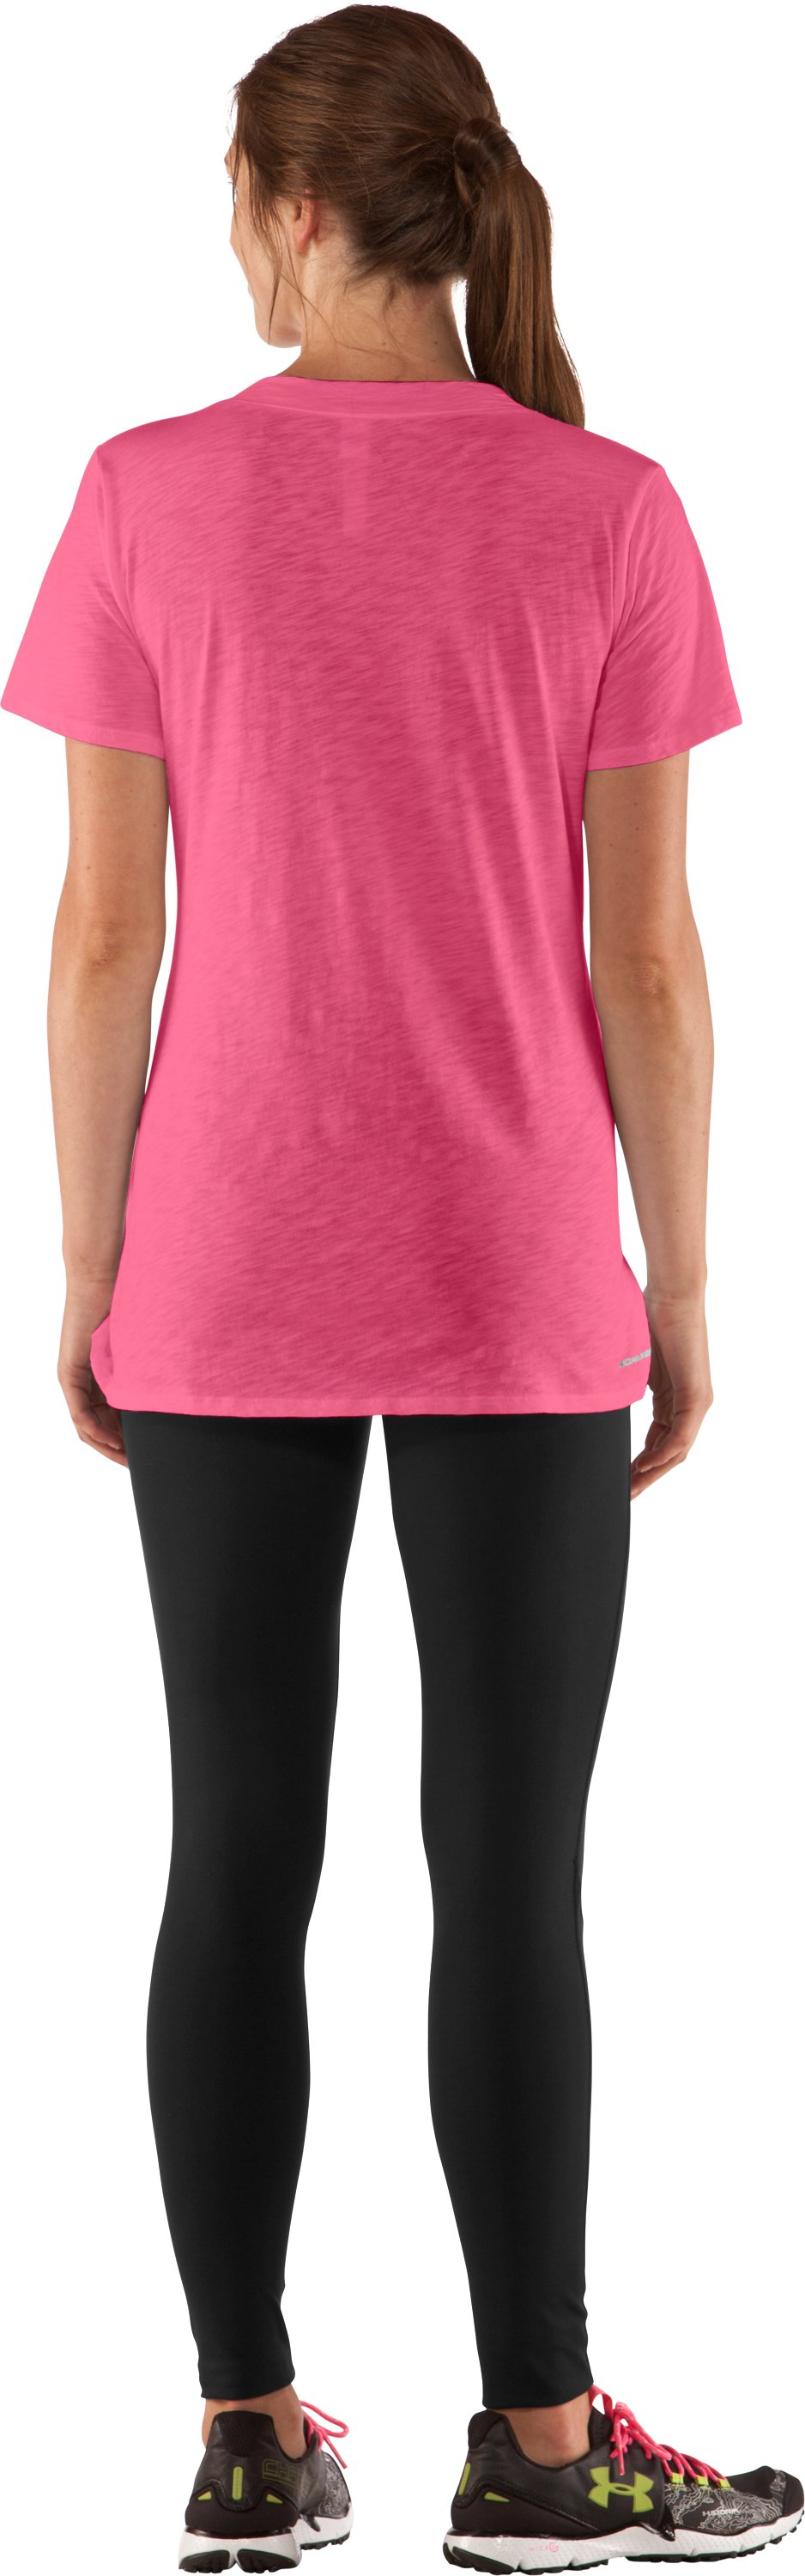 Women's Charged Cotton® Slub T-Shirt, Ultra, Back